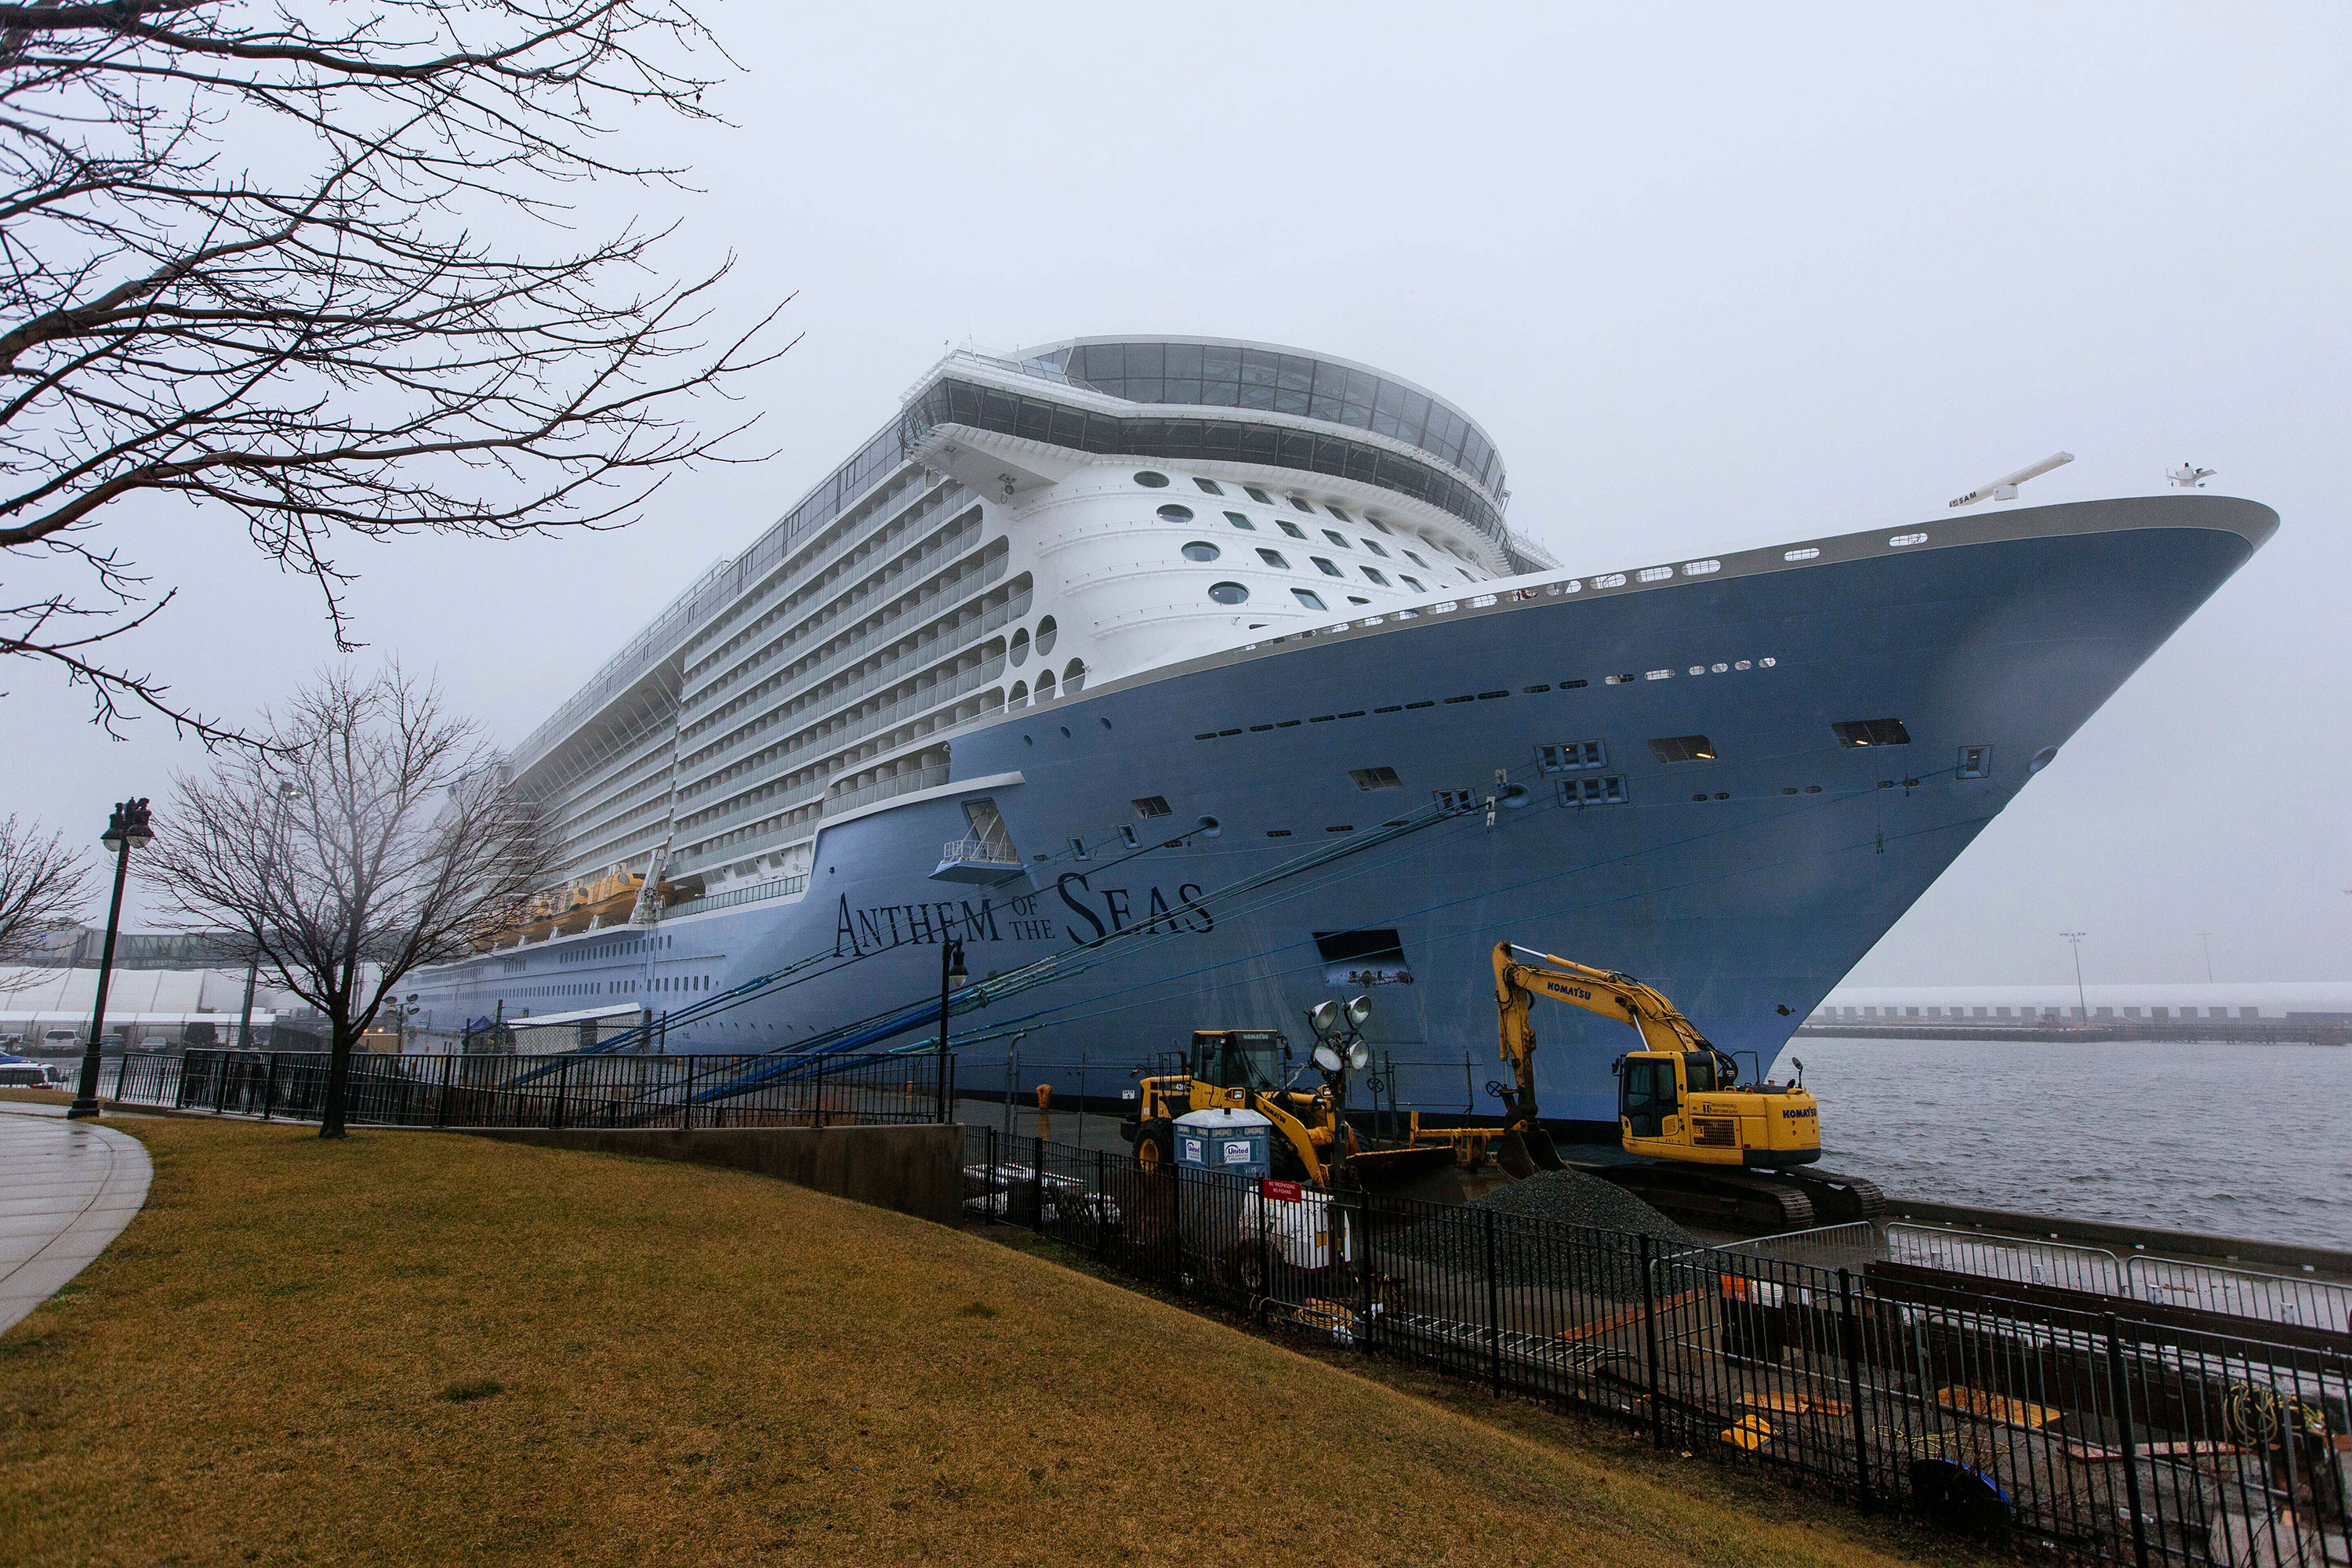 Anthem of the Seas docked at the Cape Liberty Cruise Port in Bayonne, New Jersey, on Friday.